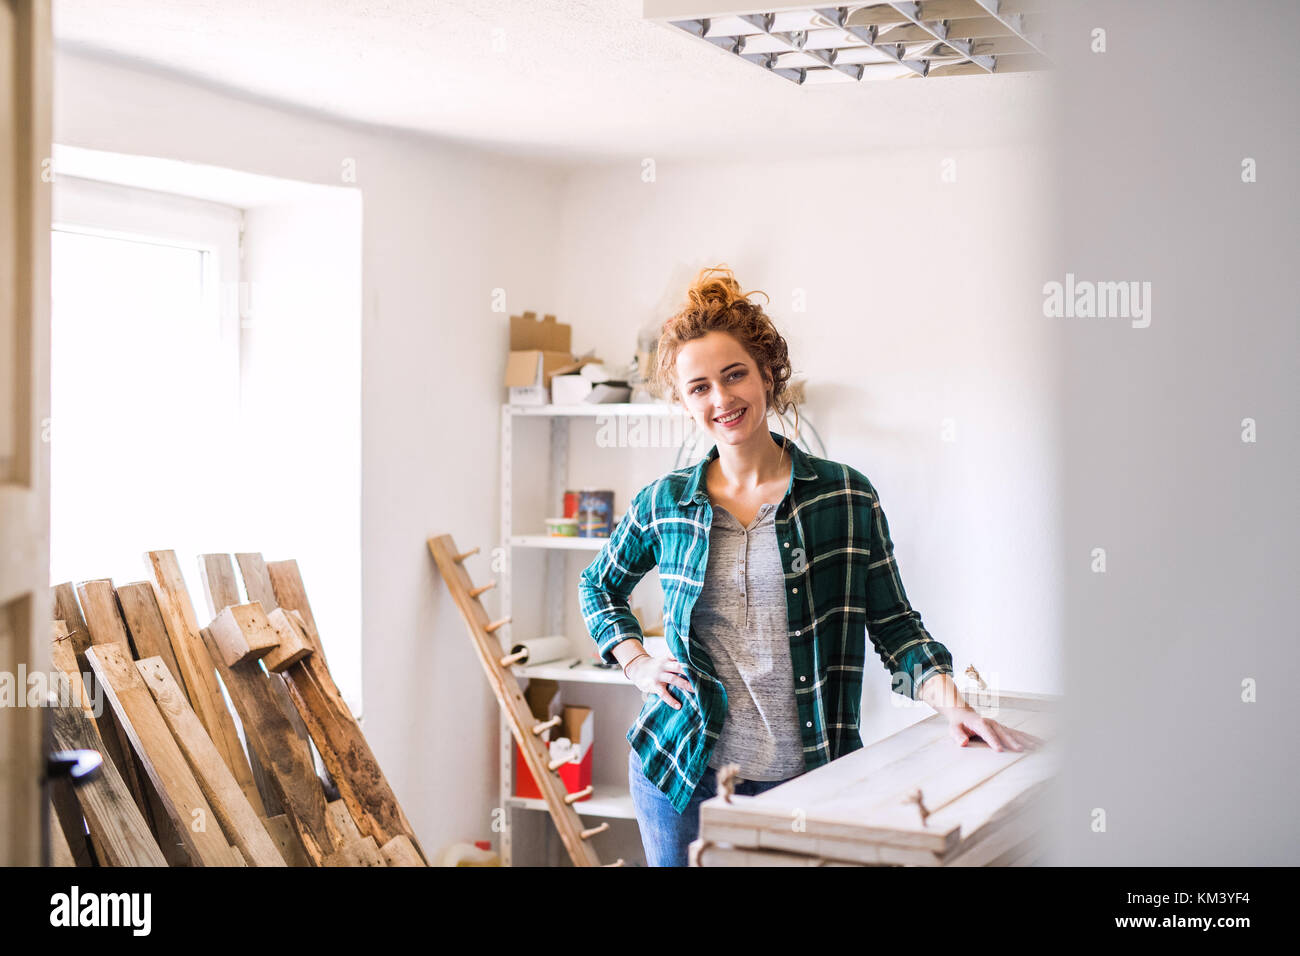 Small business of a young woman. - Stock Image